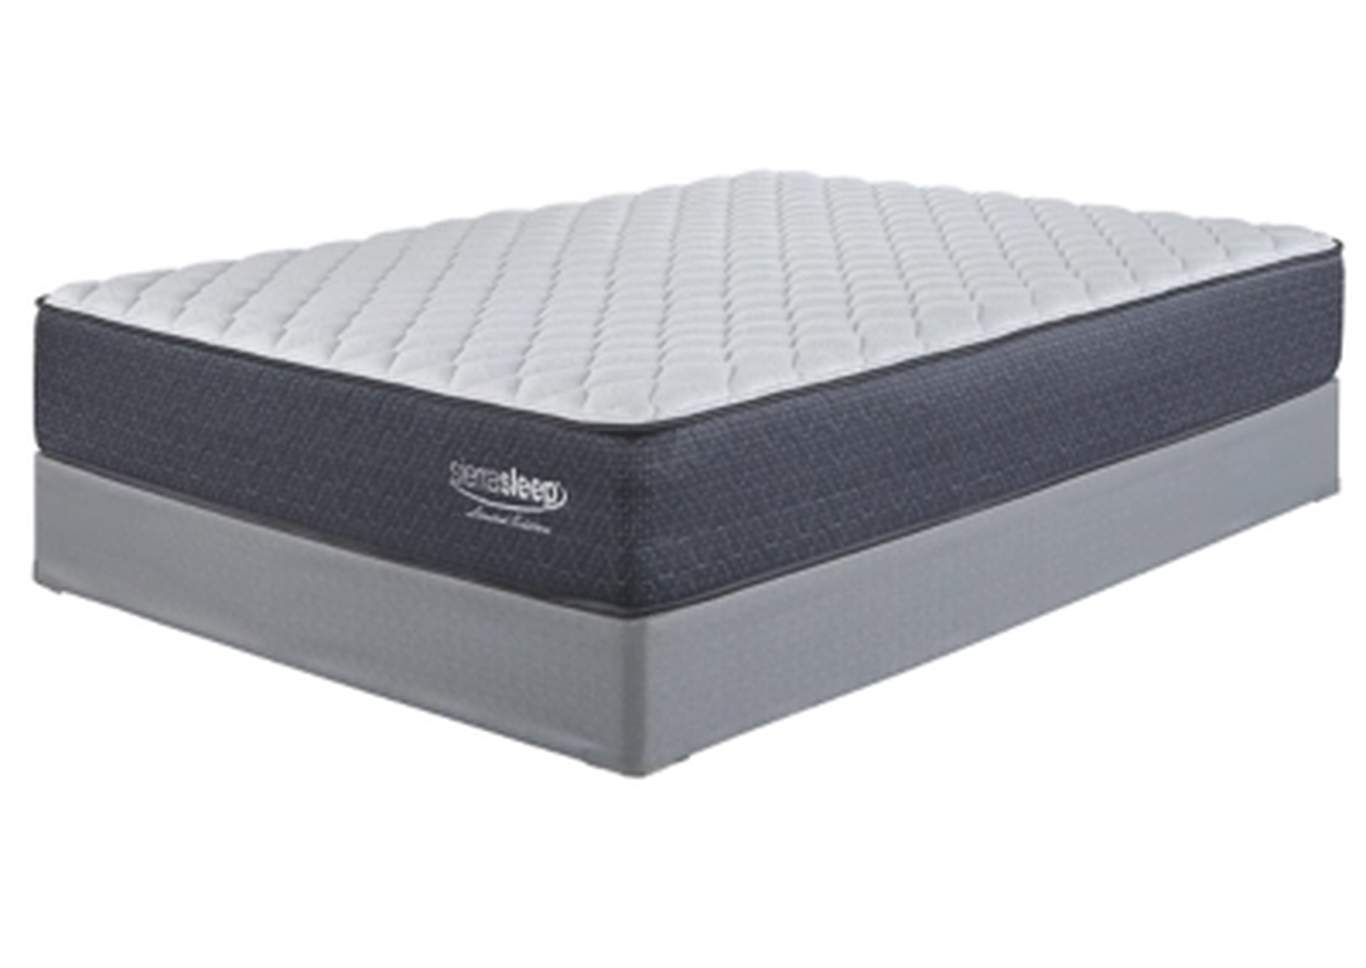 Limited Edition Firm White California King Mattress,Sierra Sleep by Ashley